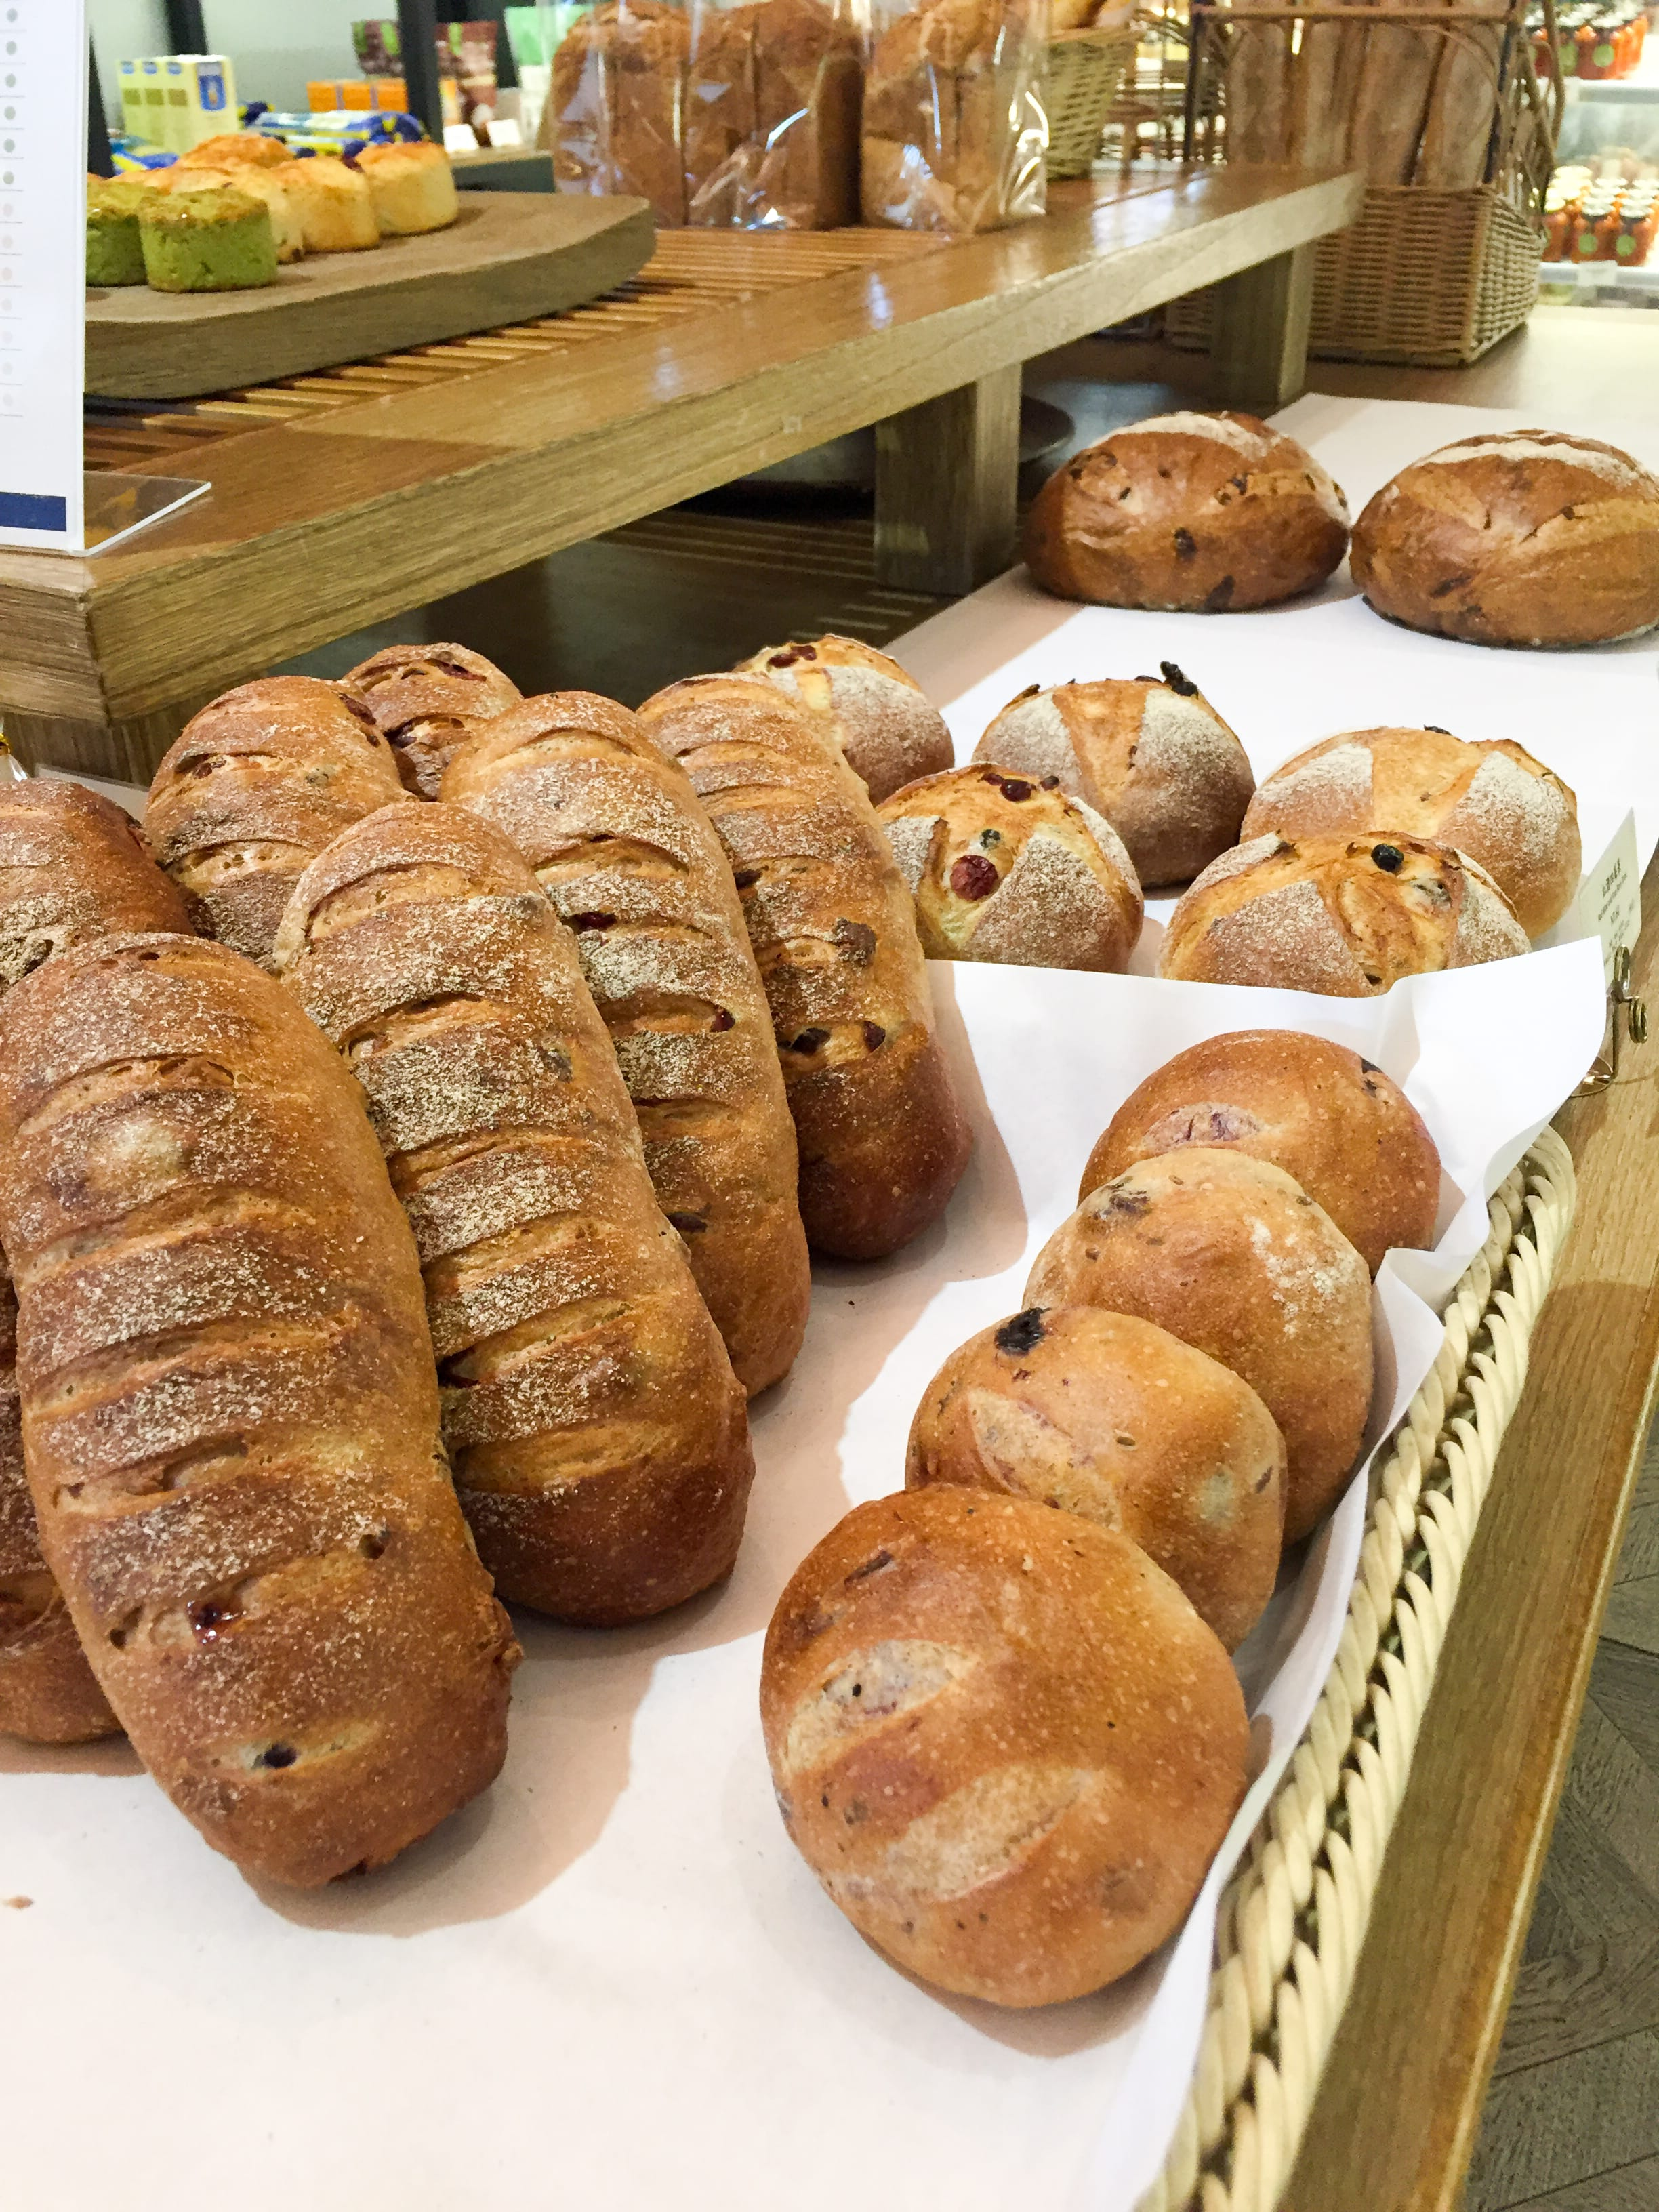 Variety of European Breads